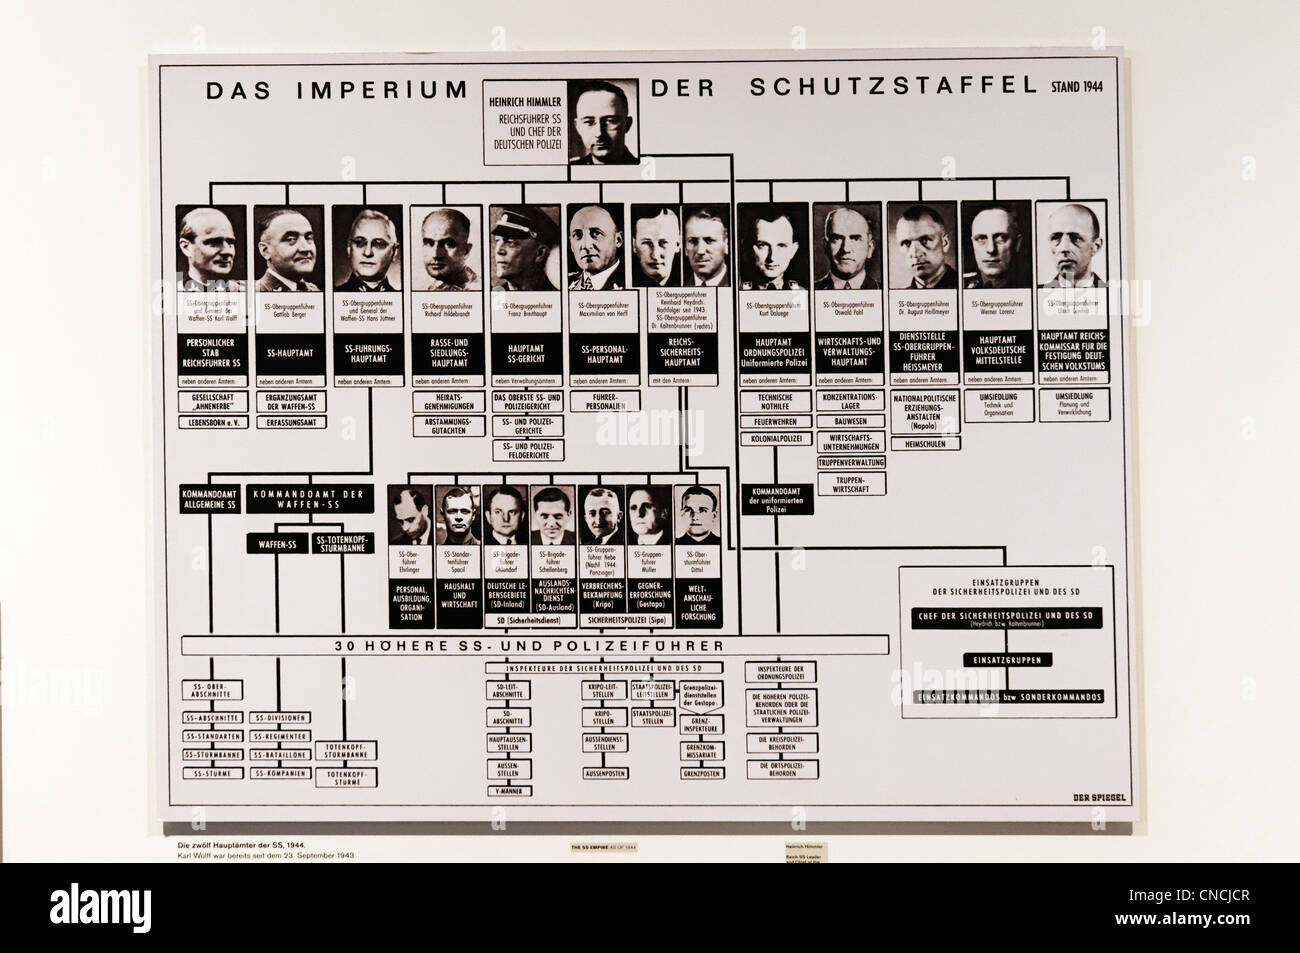 A family tree of the SS command structure with Heinrich Himmler at the top - Stock Image